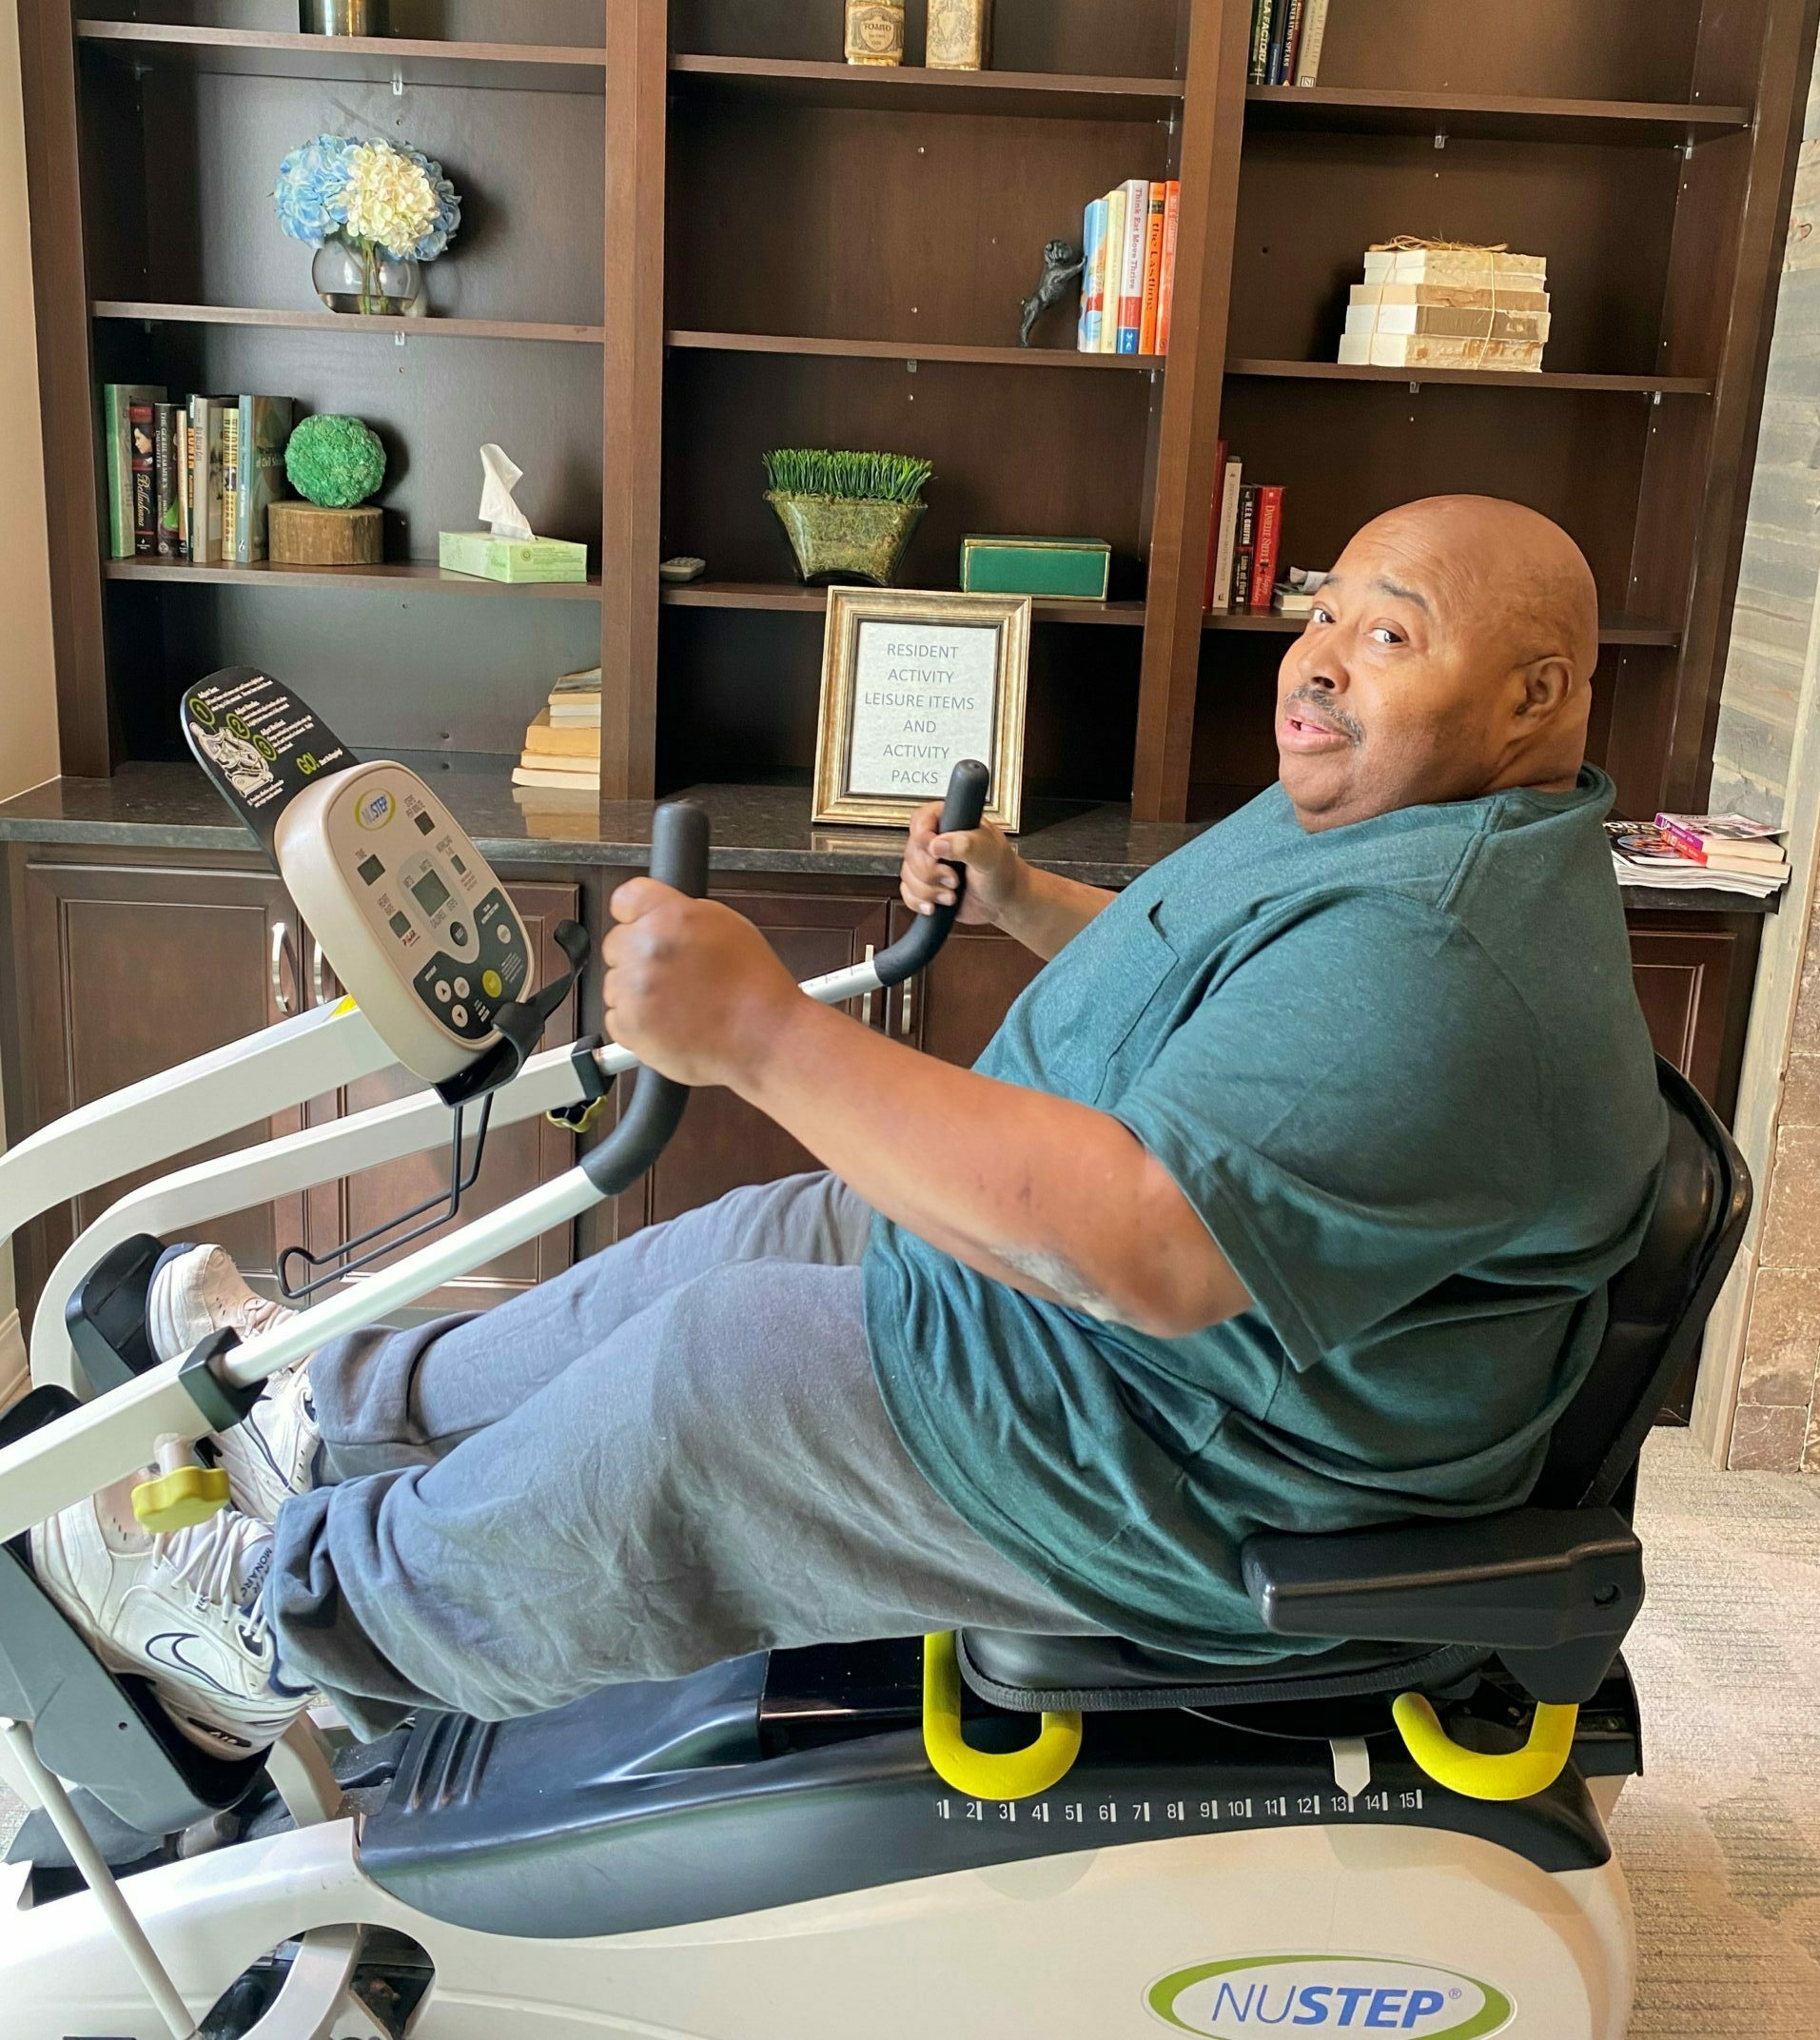 Middle-aged male therapy patient on exercise bike